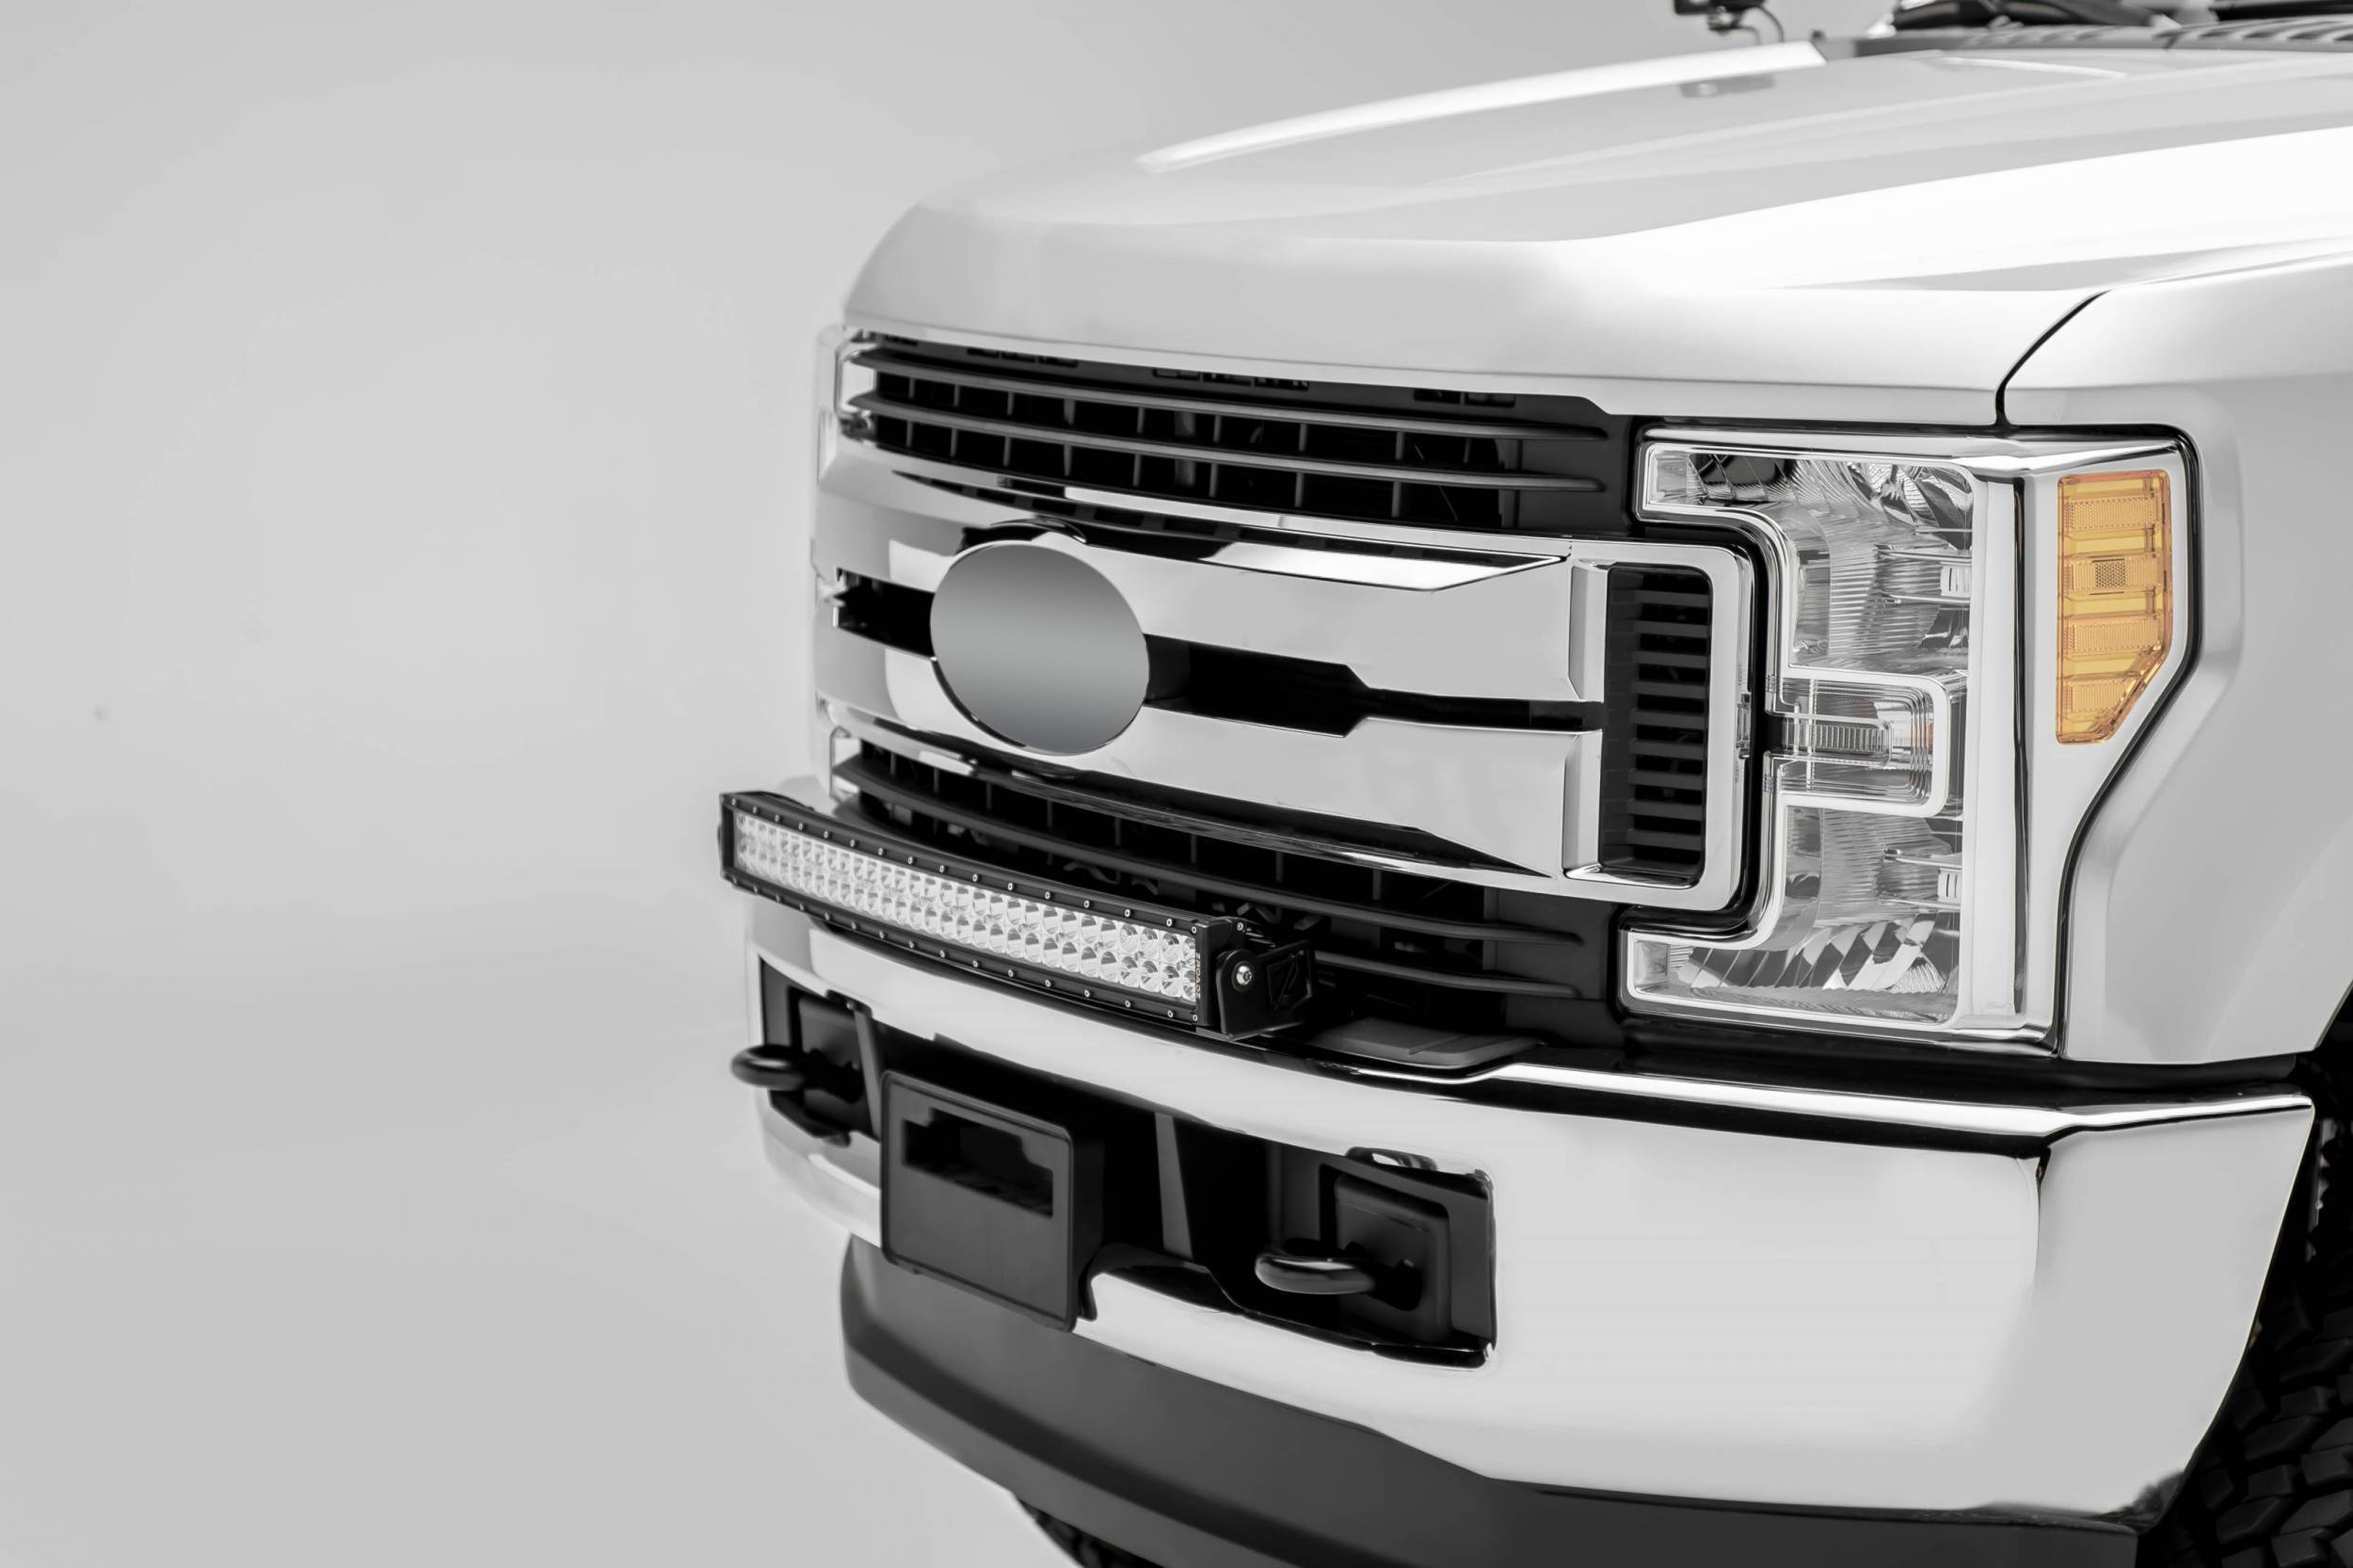 ZROADZ OFF ROAD PRODUCTS - 2017-2019 Ford Super Duty Front Bumper Top LED Kit with (1) 30 Inch LED Curved Double Row Light Bar - PN #Z325472-KIT